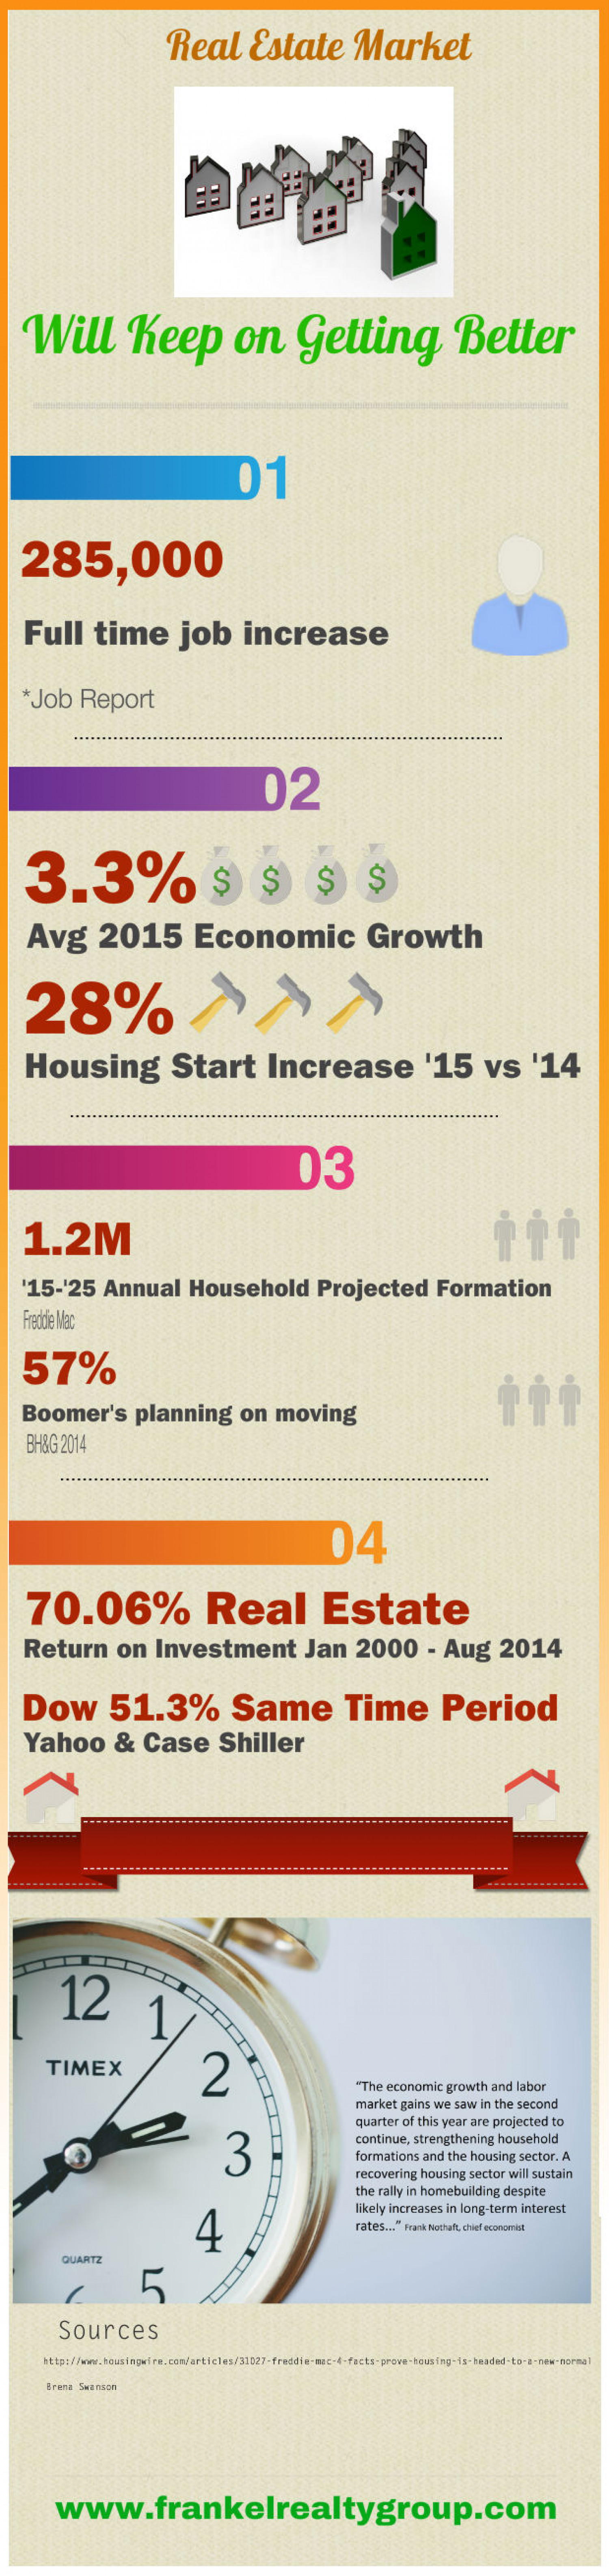 Real Estate Market Will Keep on Getting Better Infographic